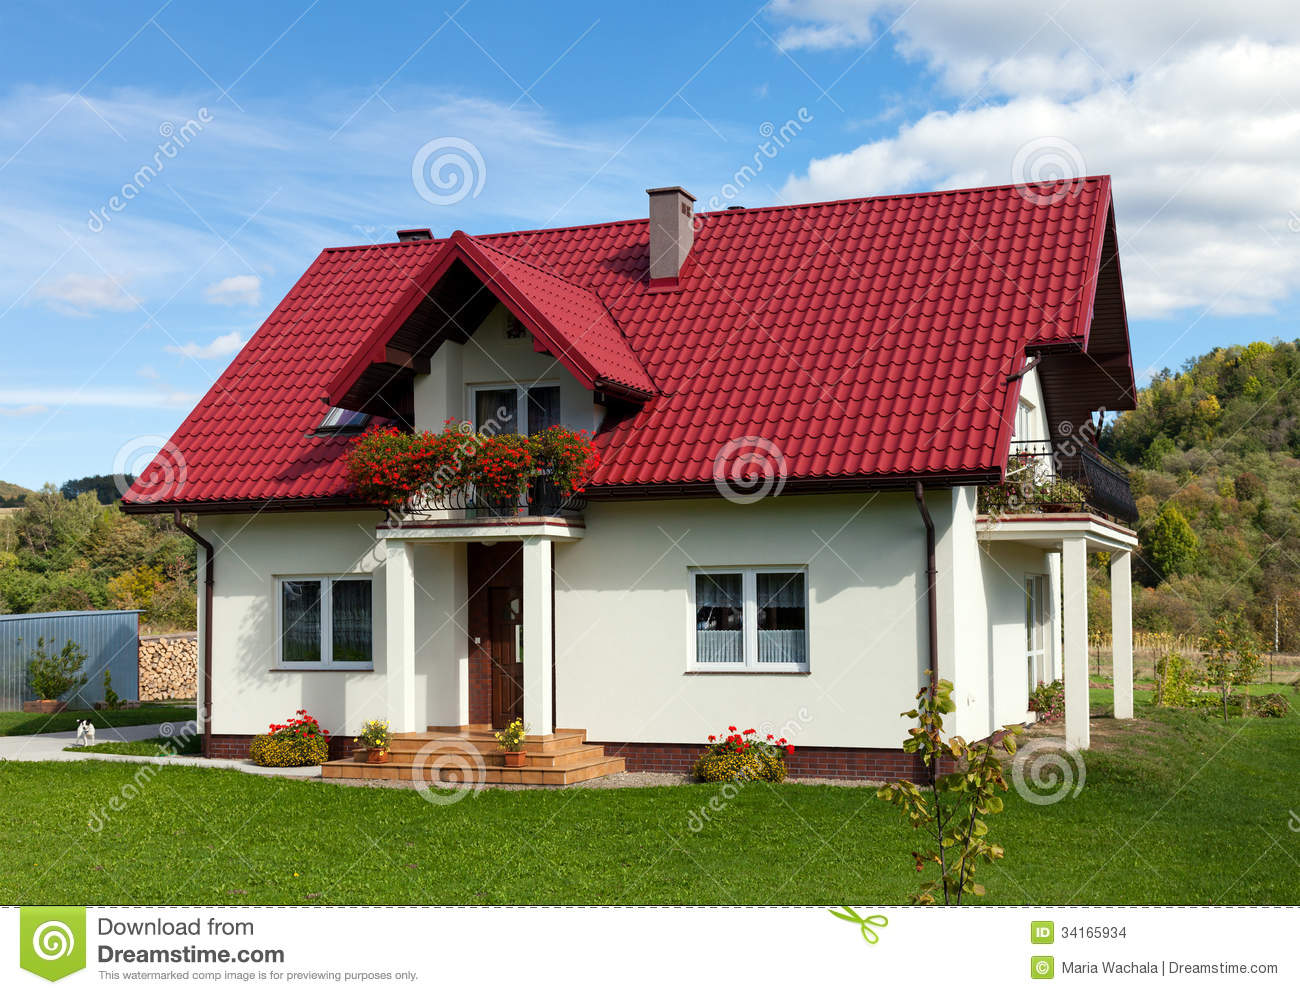 New family house stock photo image of home environment 34165934 - Houses attic families children ...